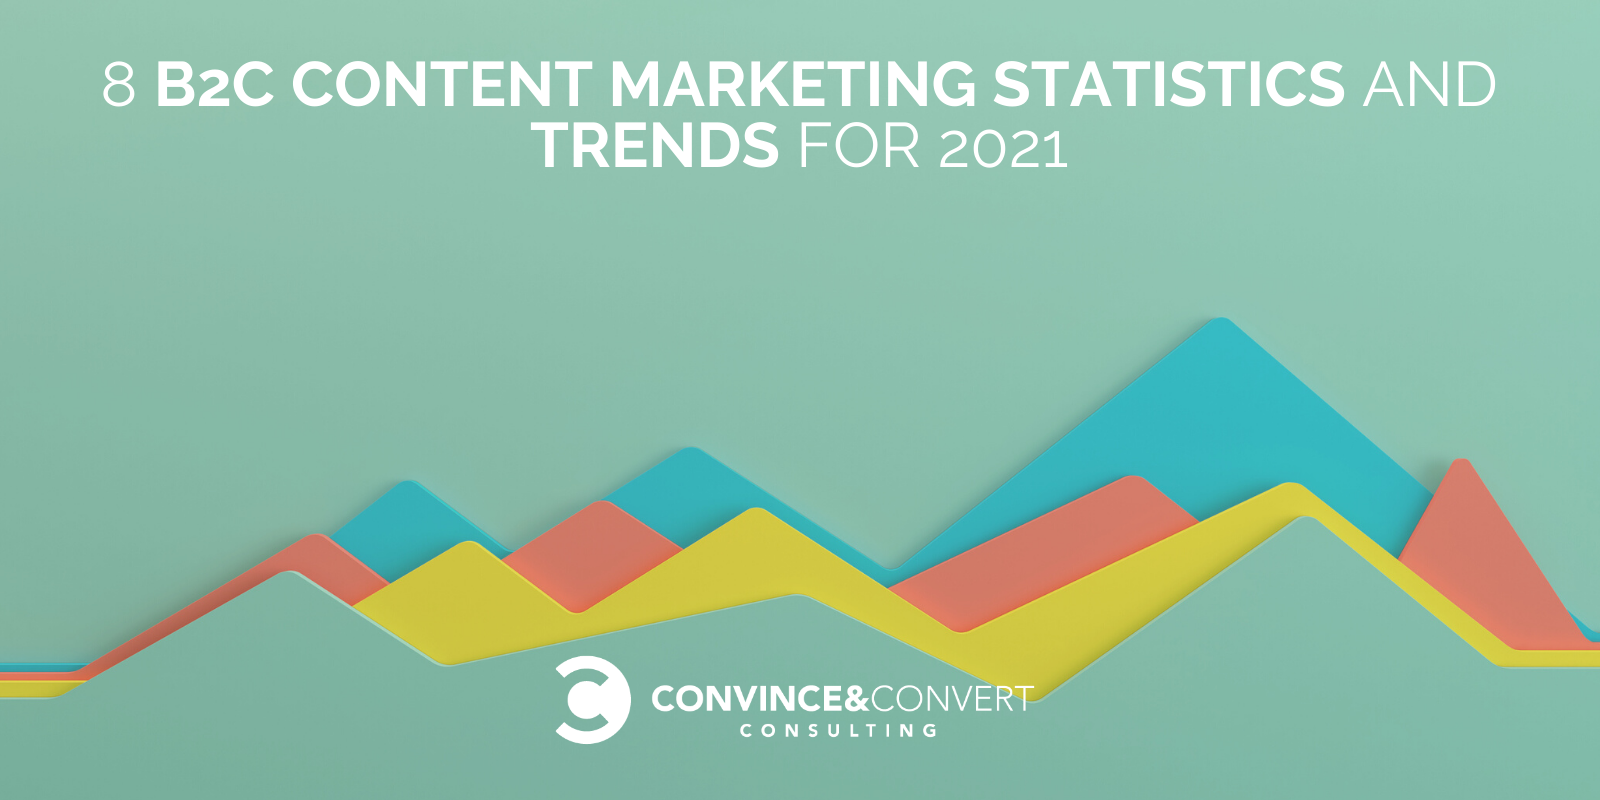 8 B2C Issue Marketing Statistics and Trends for 2021